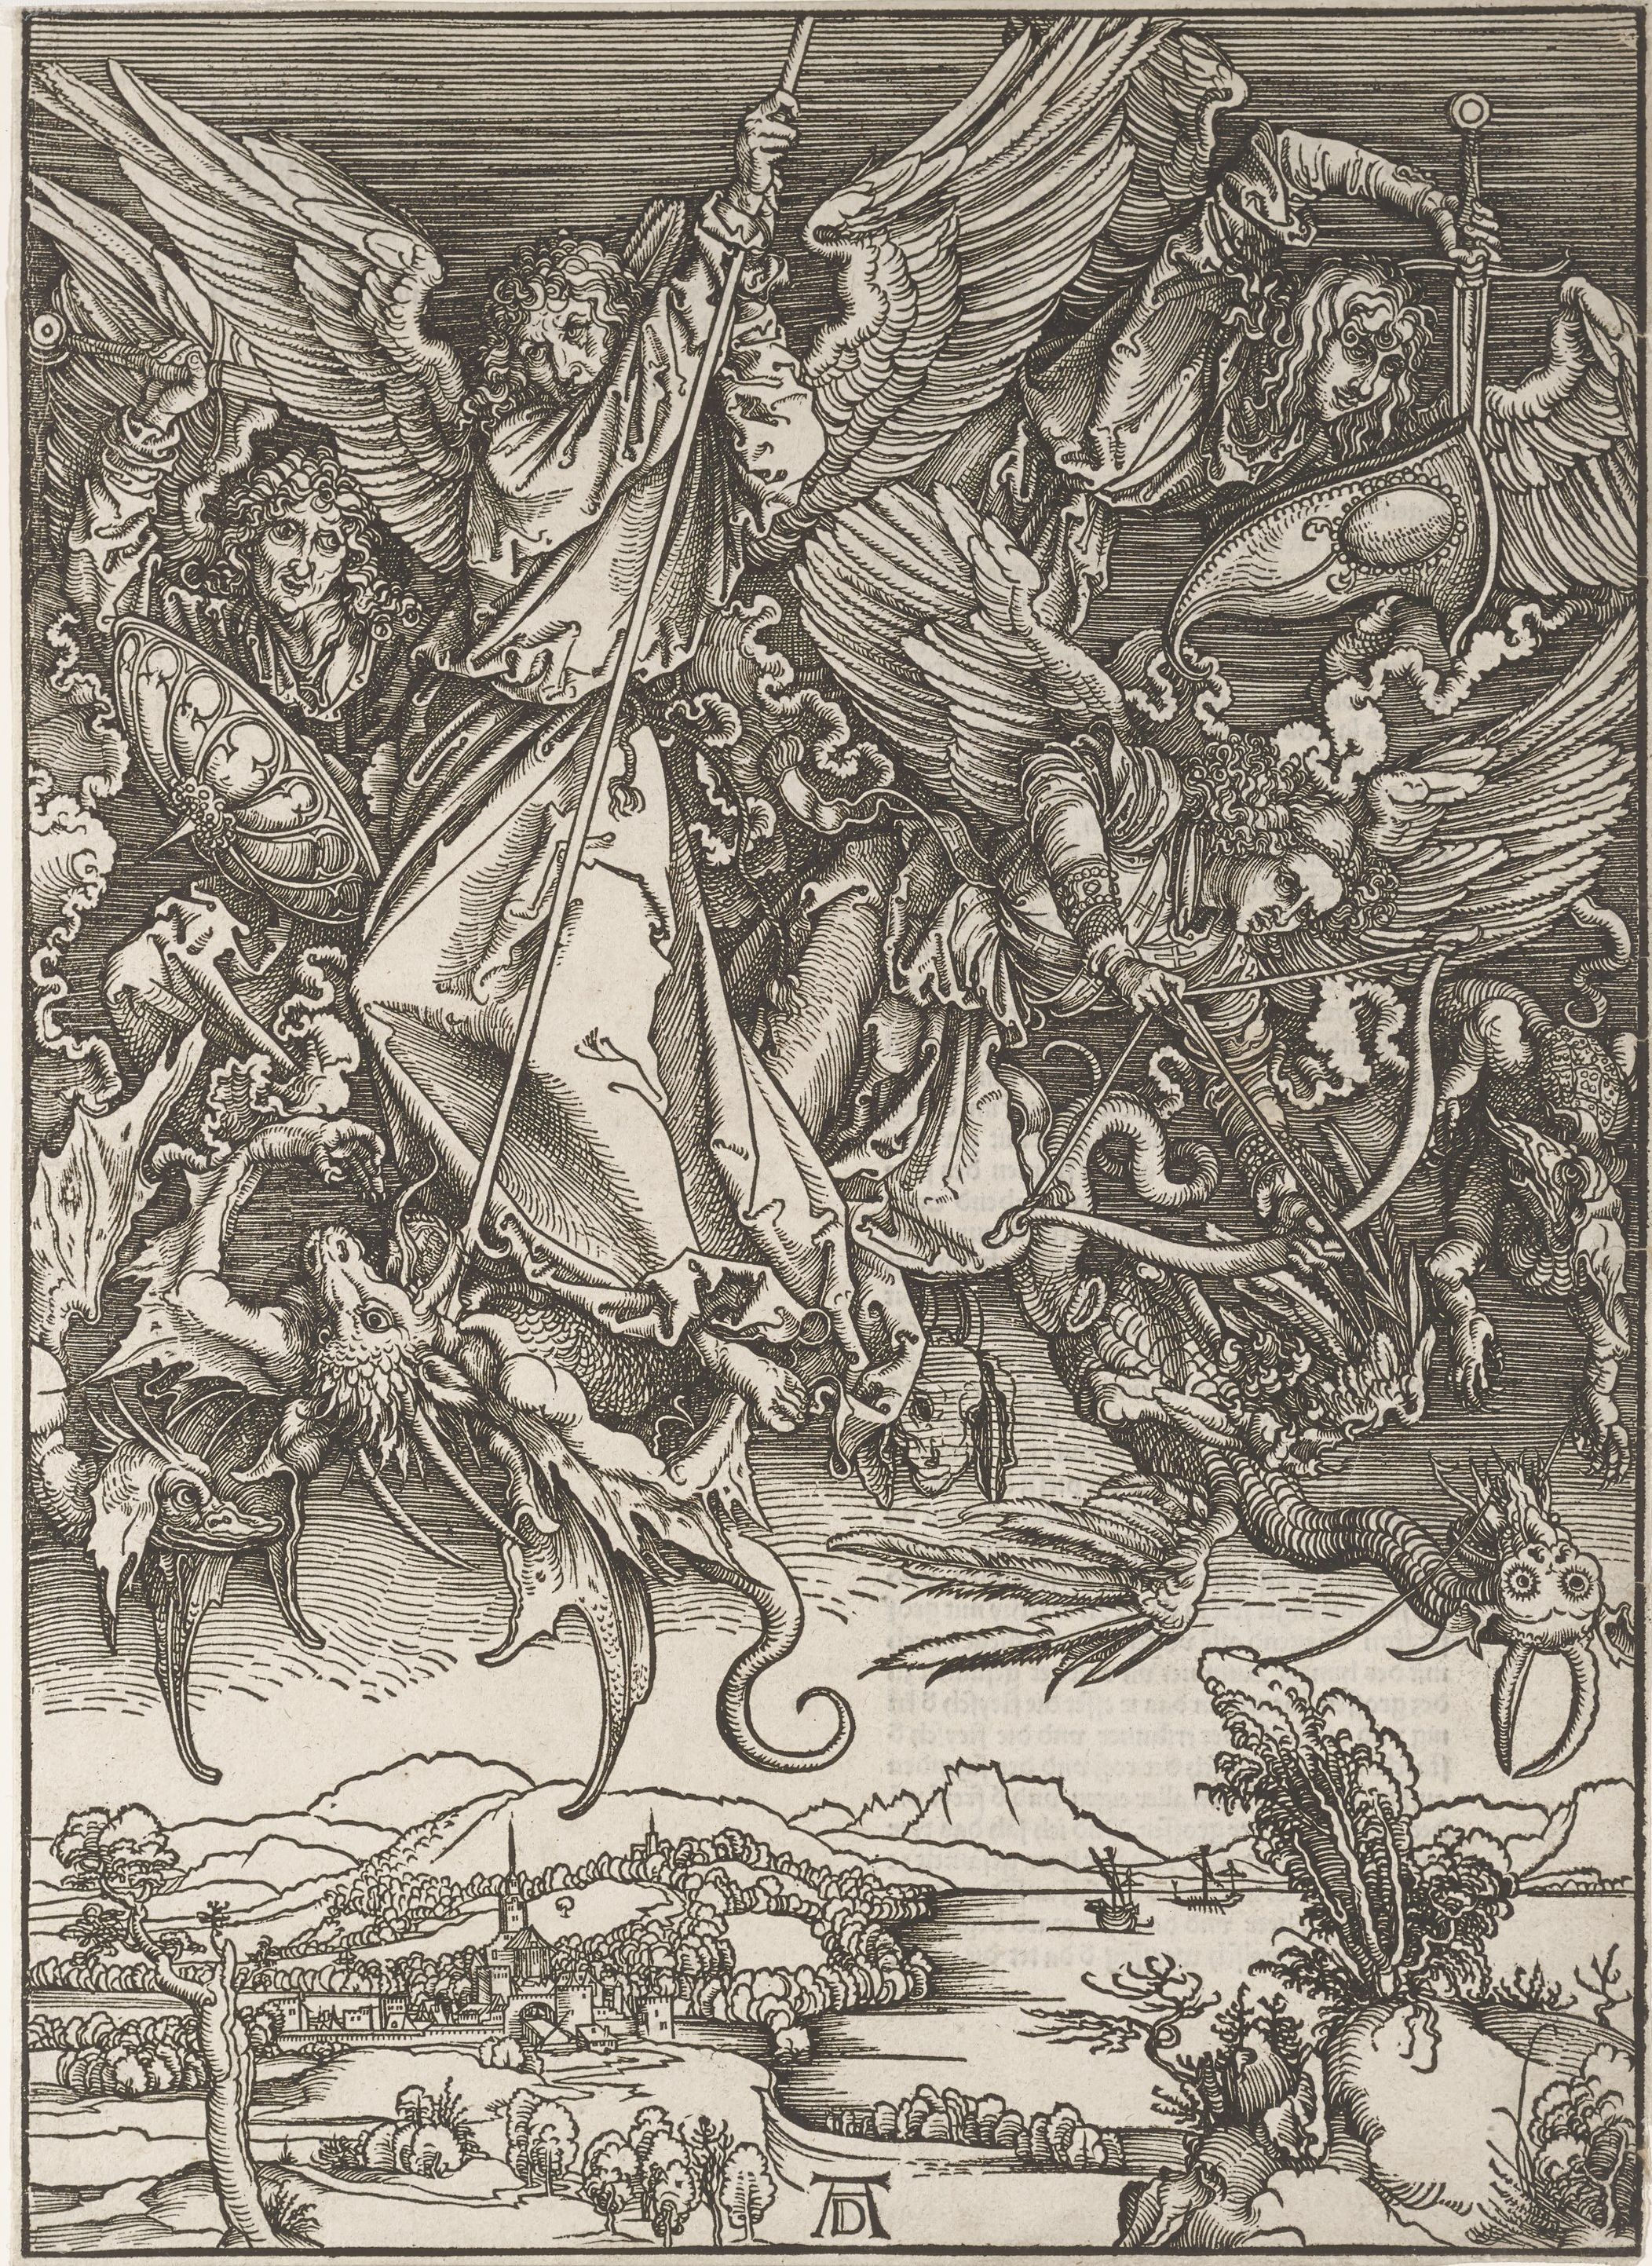 """Albrecht Dürer, """"Saint Michael Fighting the Dragon,"""" 1498, woodcut, plate 10 from the """"Apocalypse,"""" private collection, on loan to Mia L2013.69.201 (Mia P.217 is a later impression)"""